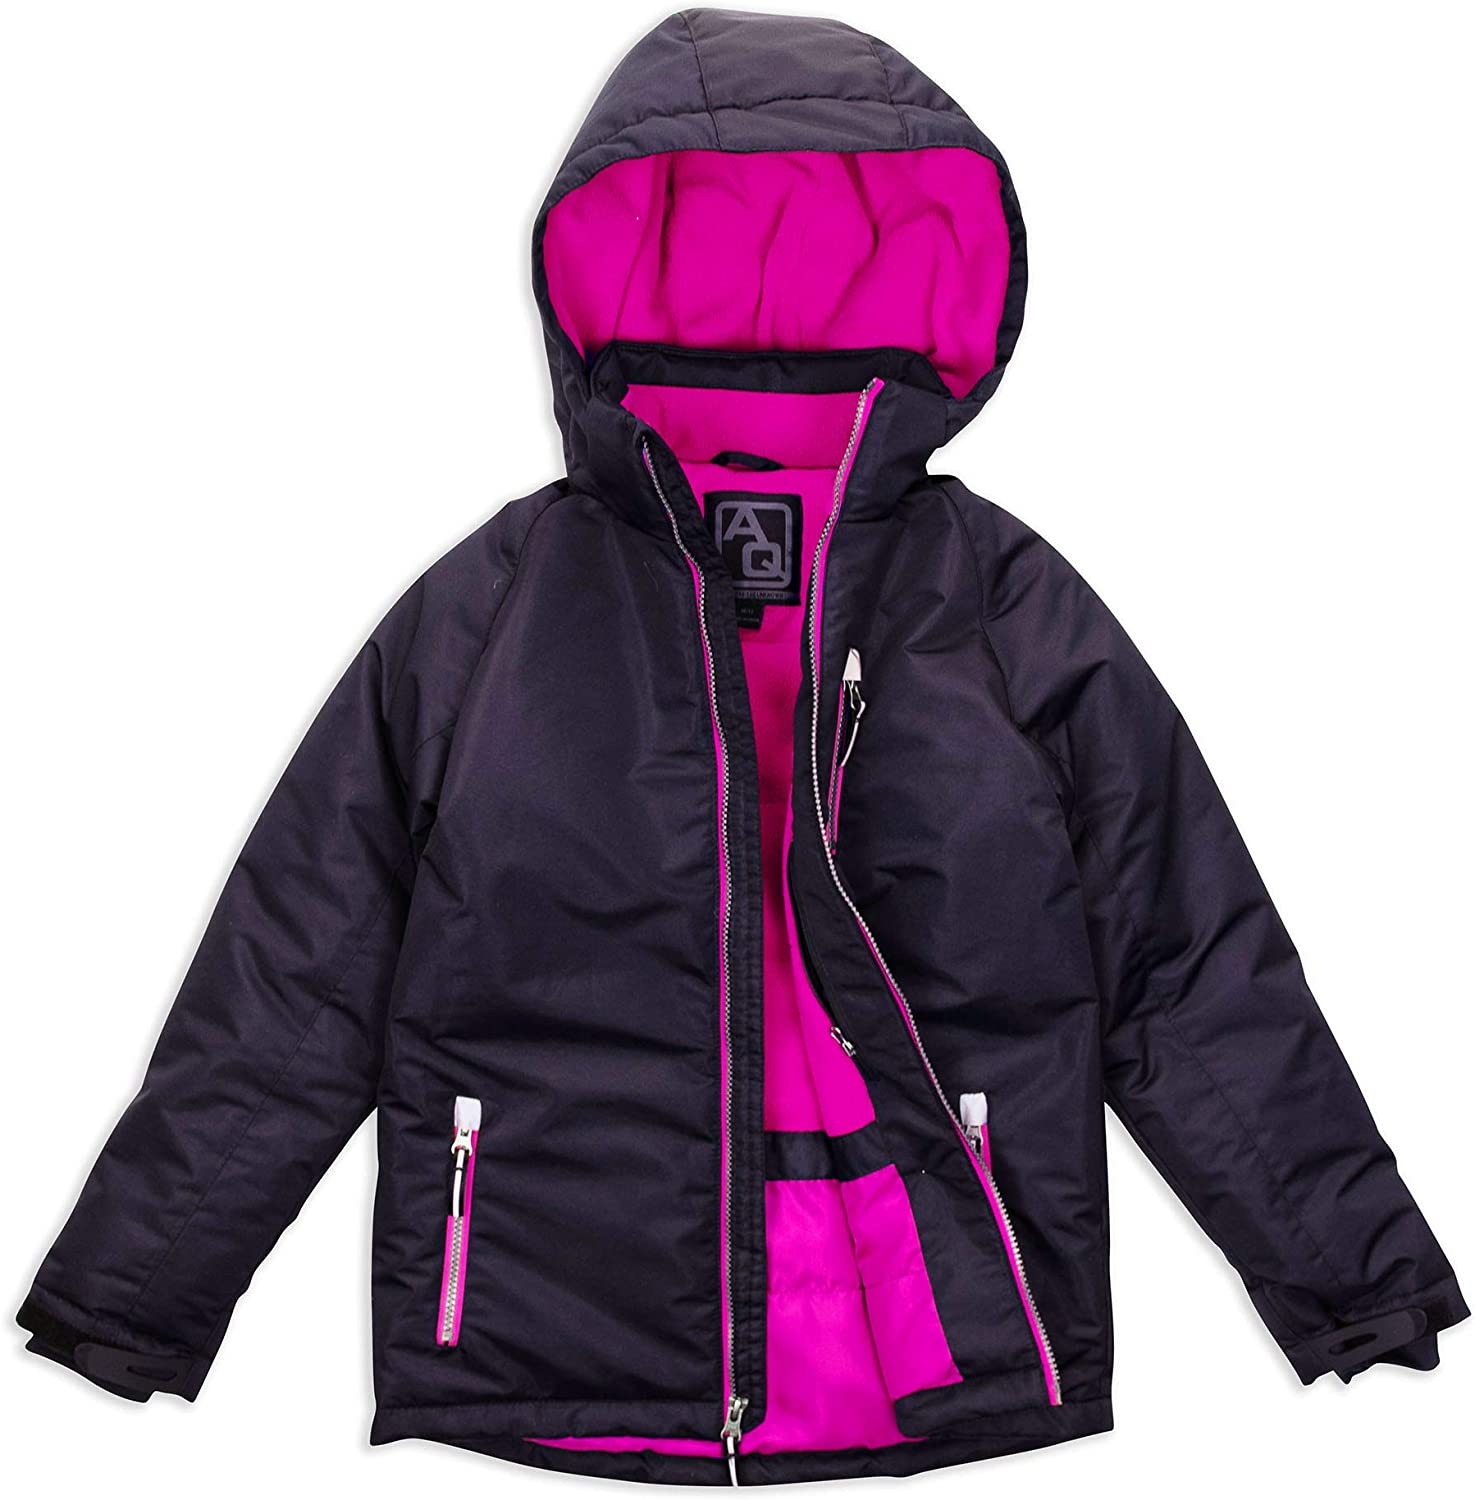 Arctic Quest Girls Windproof Max 65% OFF favorite Winter Hooded Waterproof Insulated